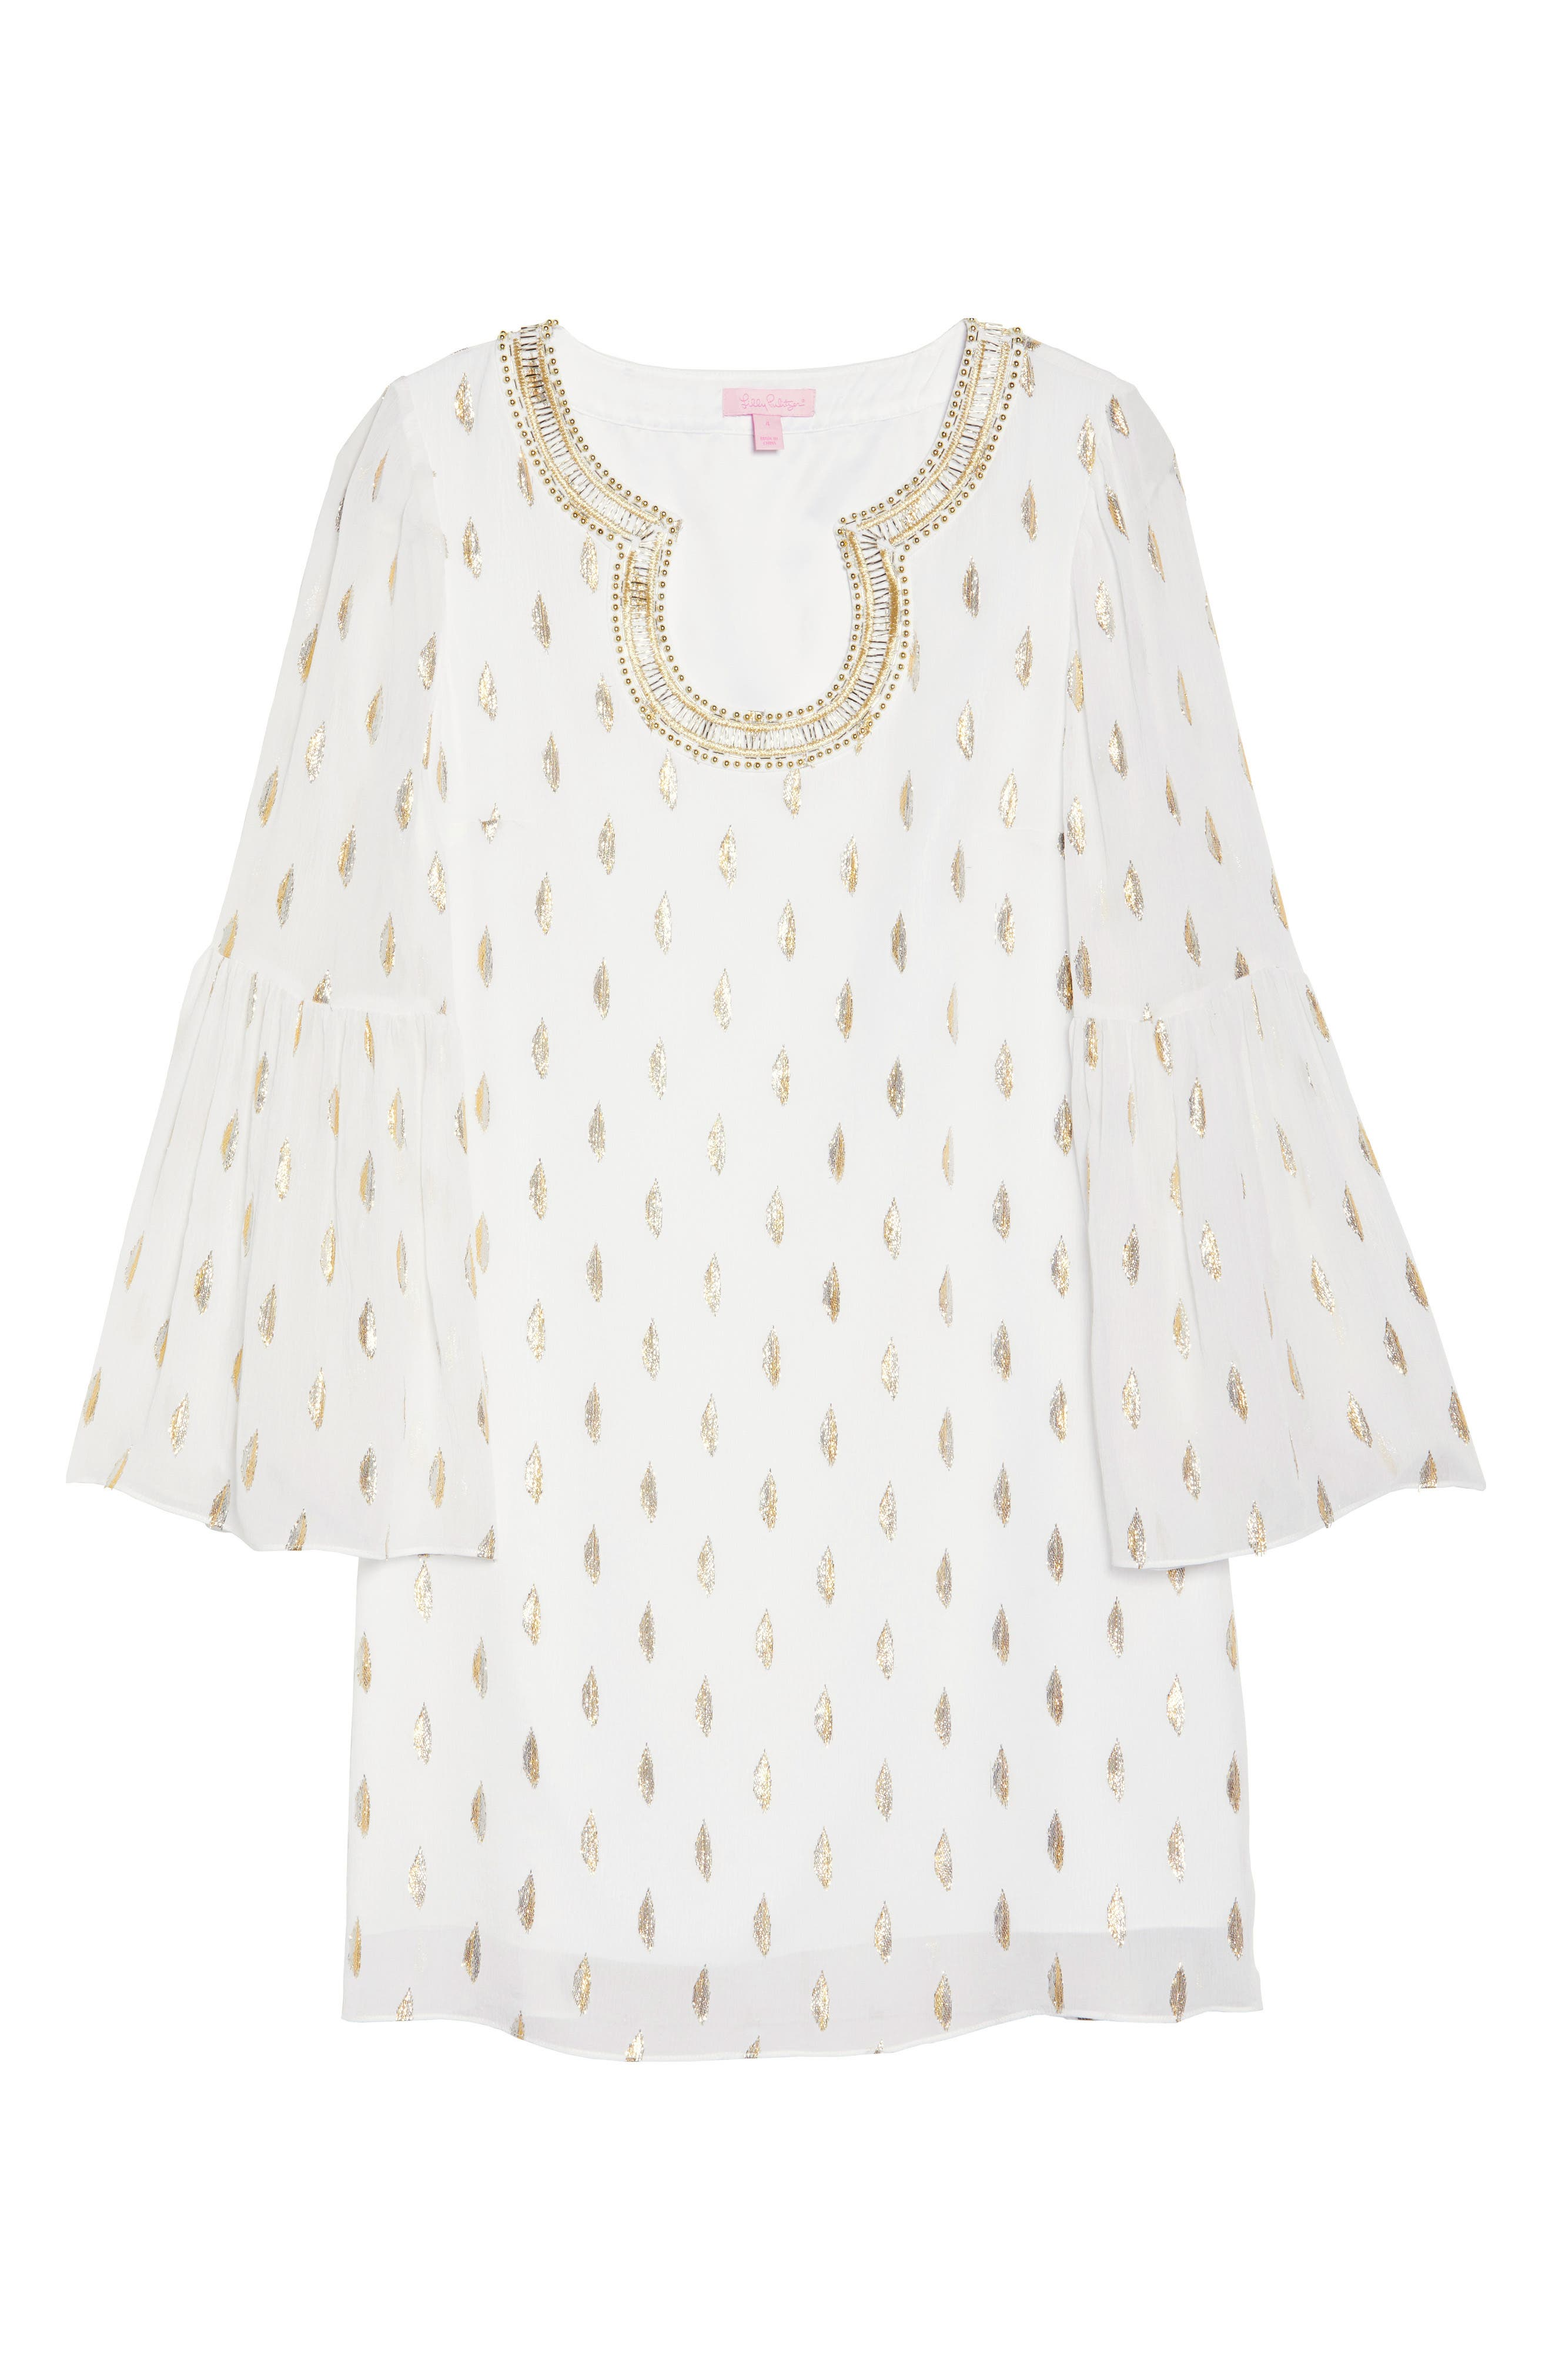 Amory Silk Tunic Dress,                             Alternate thumbnail 6, color,                             Resort White Diamond Metallic